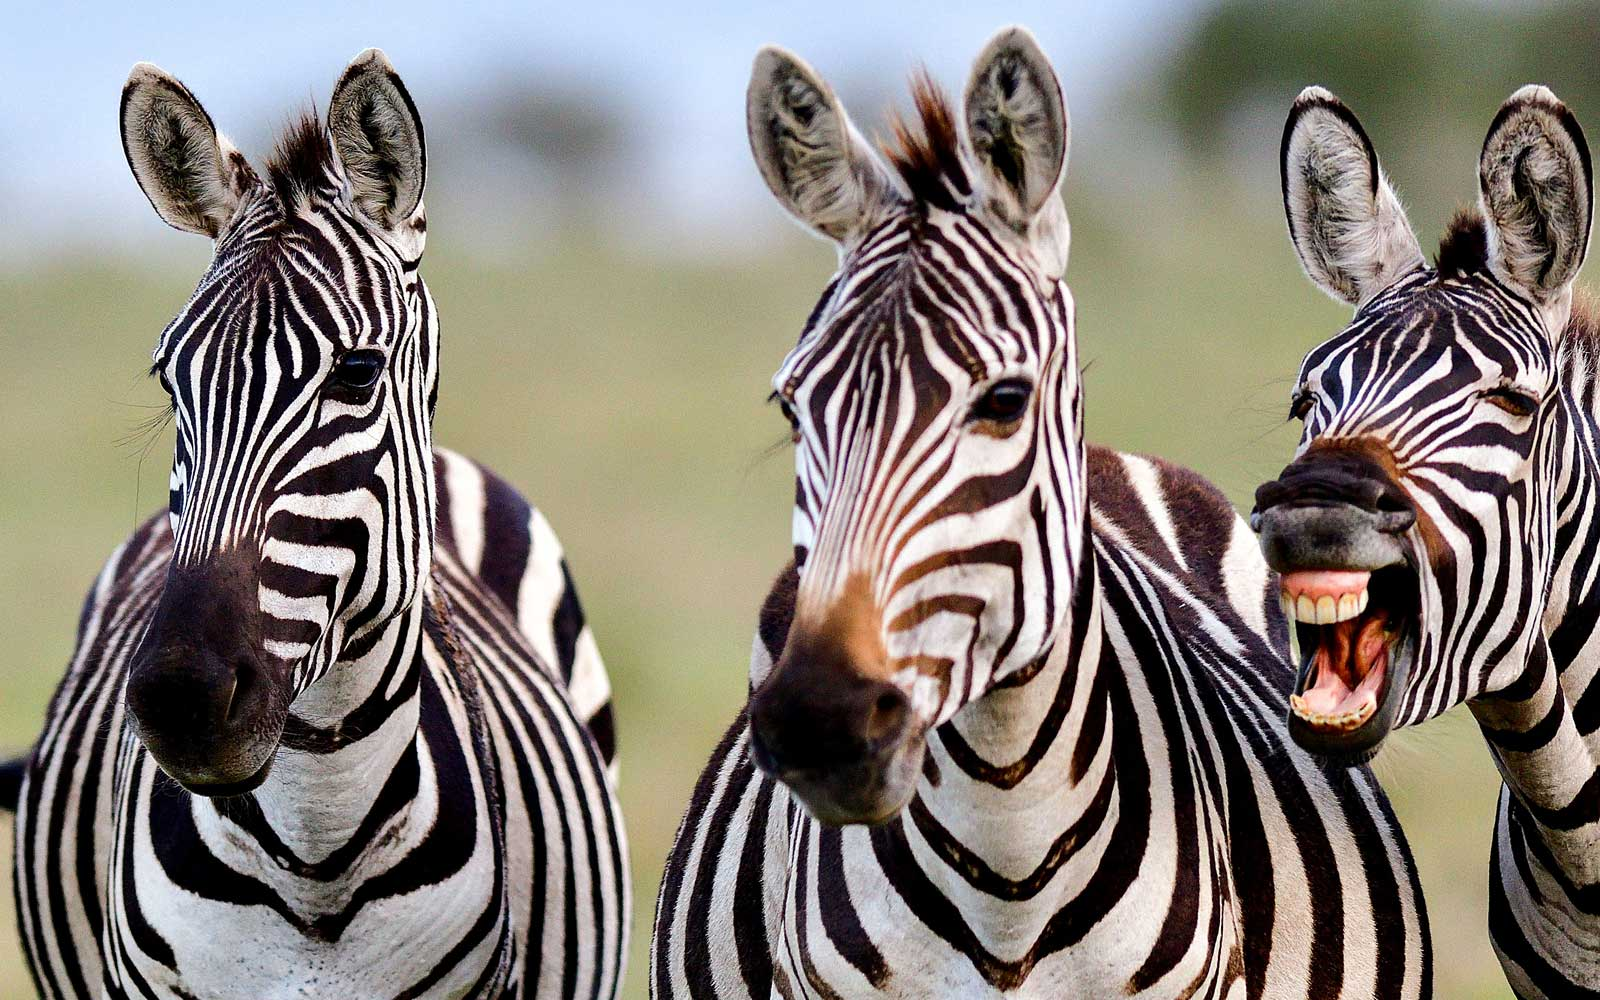 A Zebra appears to Photobomb his friends by pulling a silly face